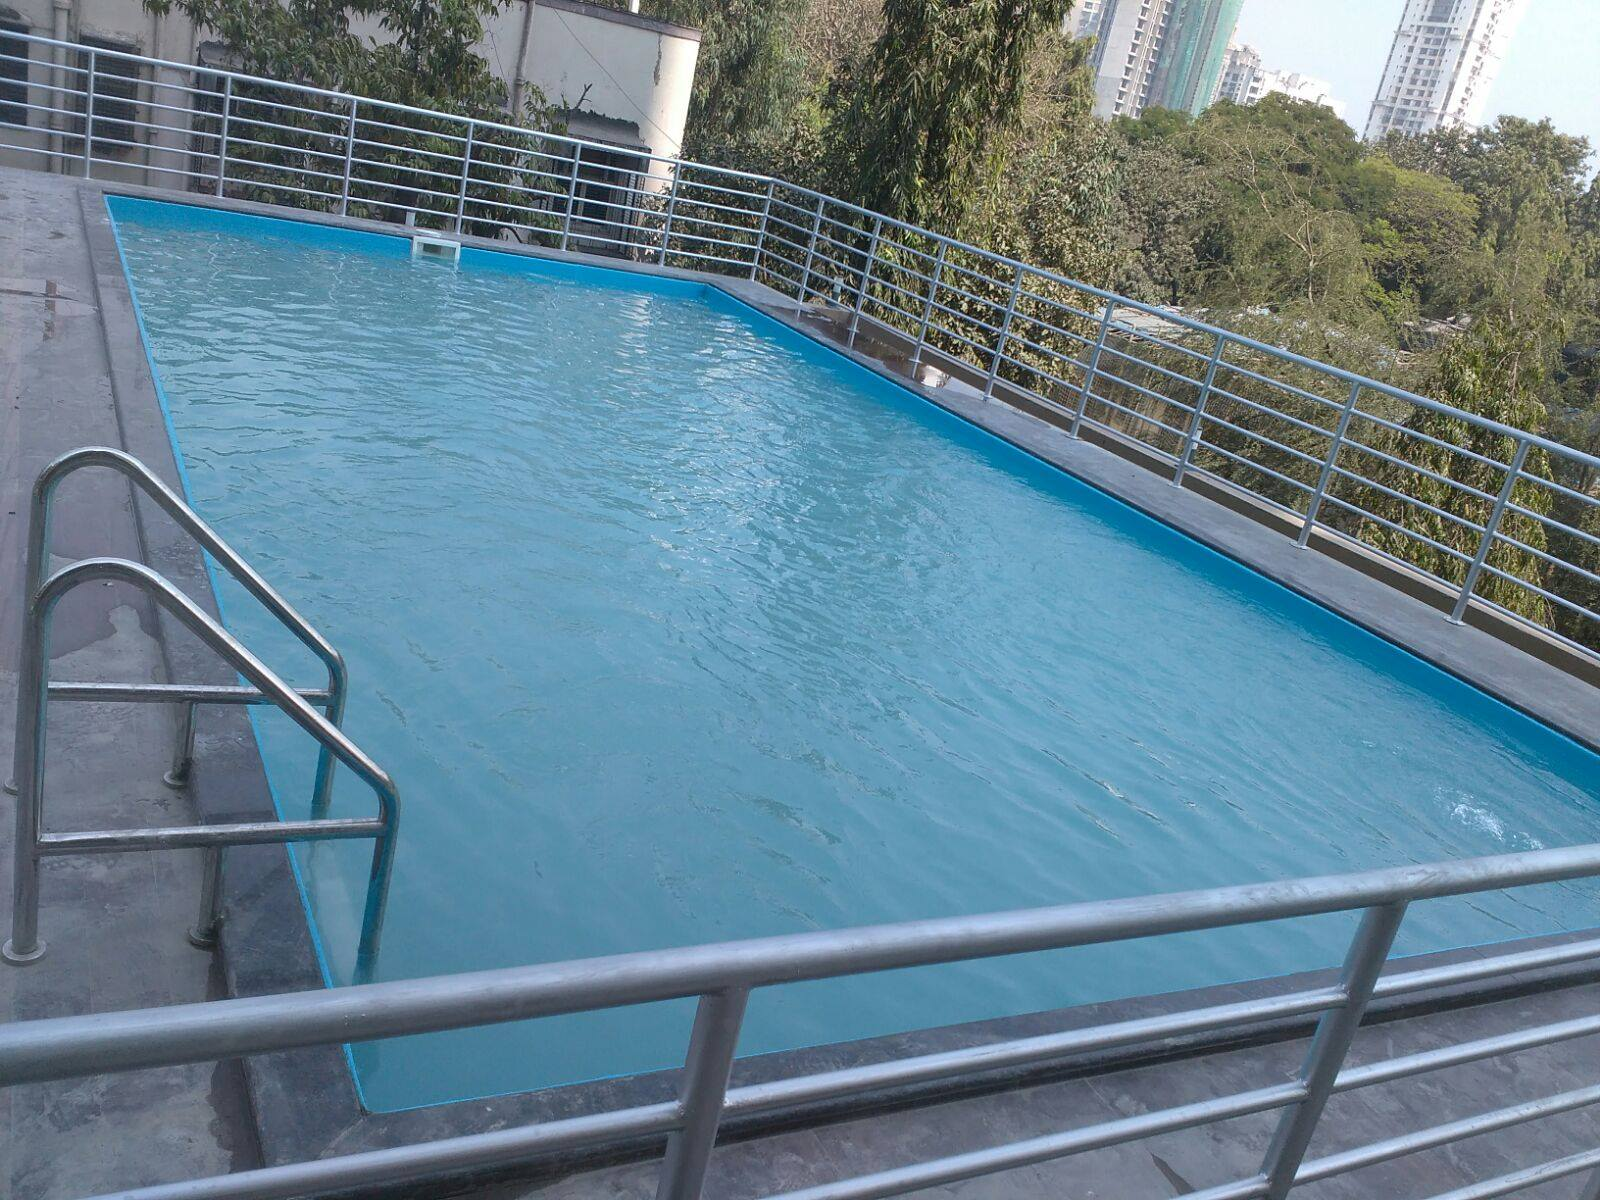 Swimming Pool Service in Chennai